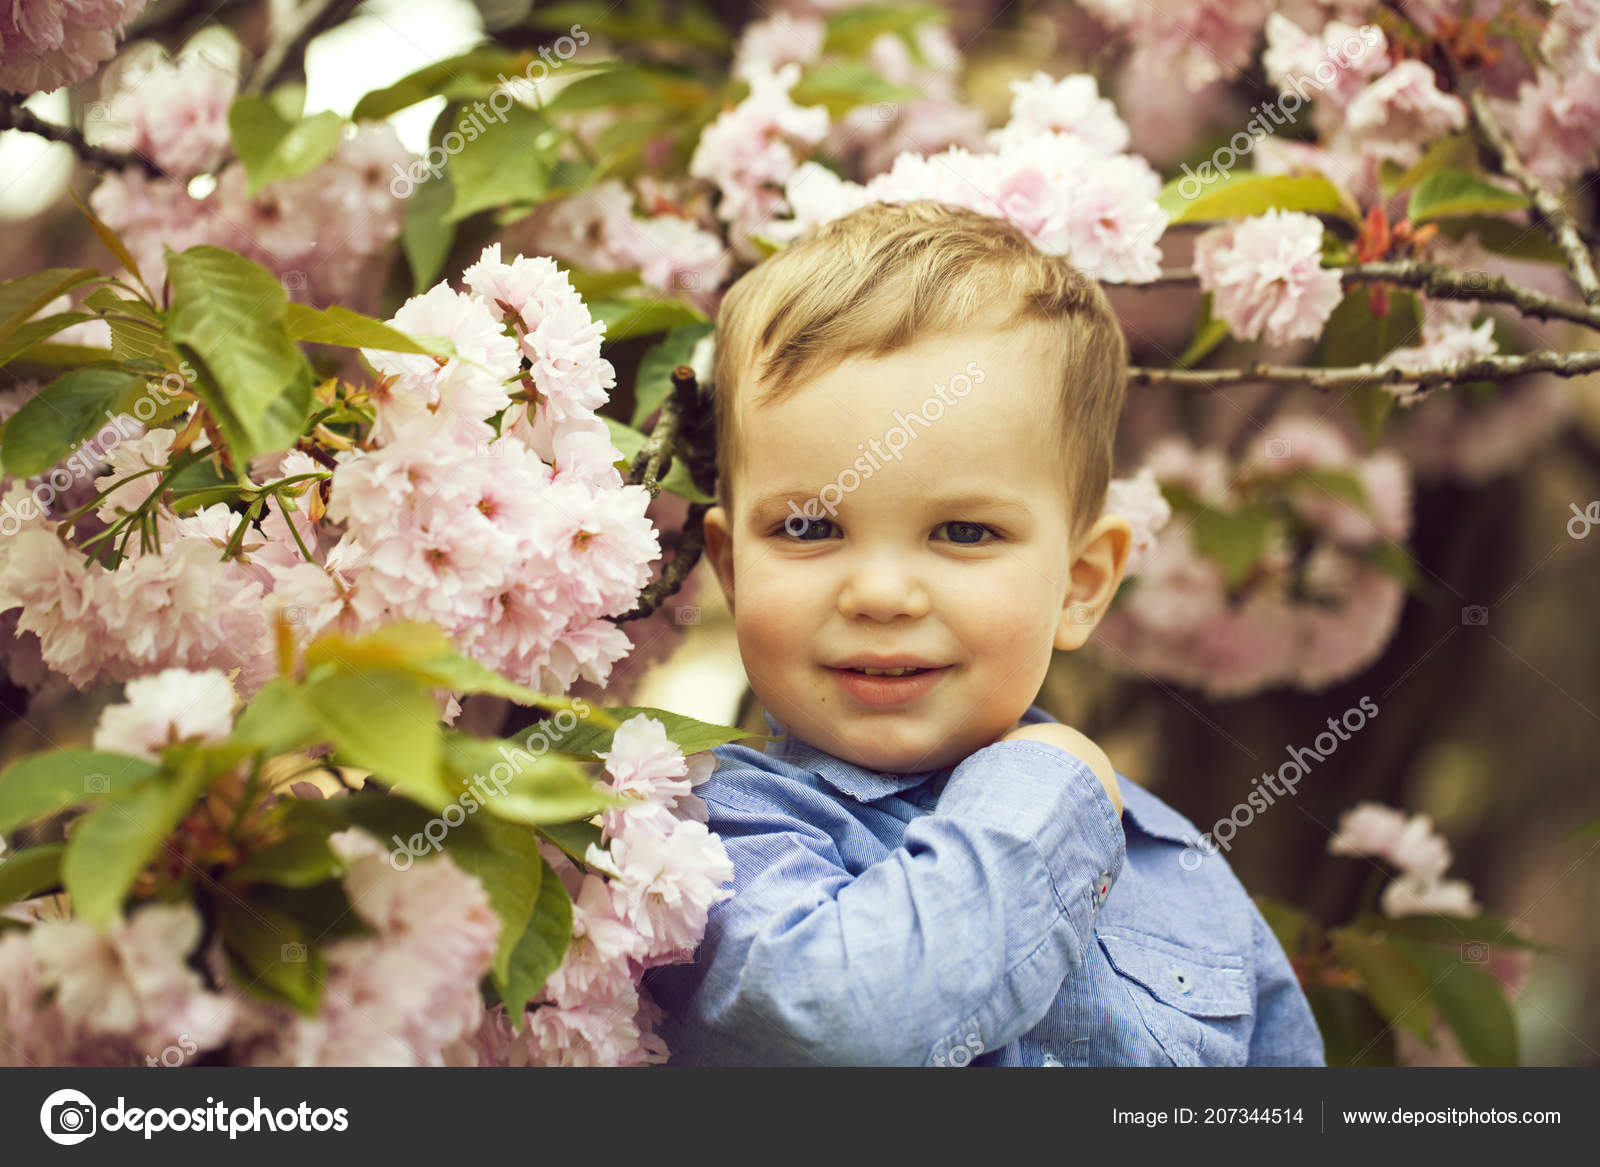 Cute Baby Boy Among Pink Blossoming Flowers Stock Photo